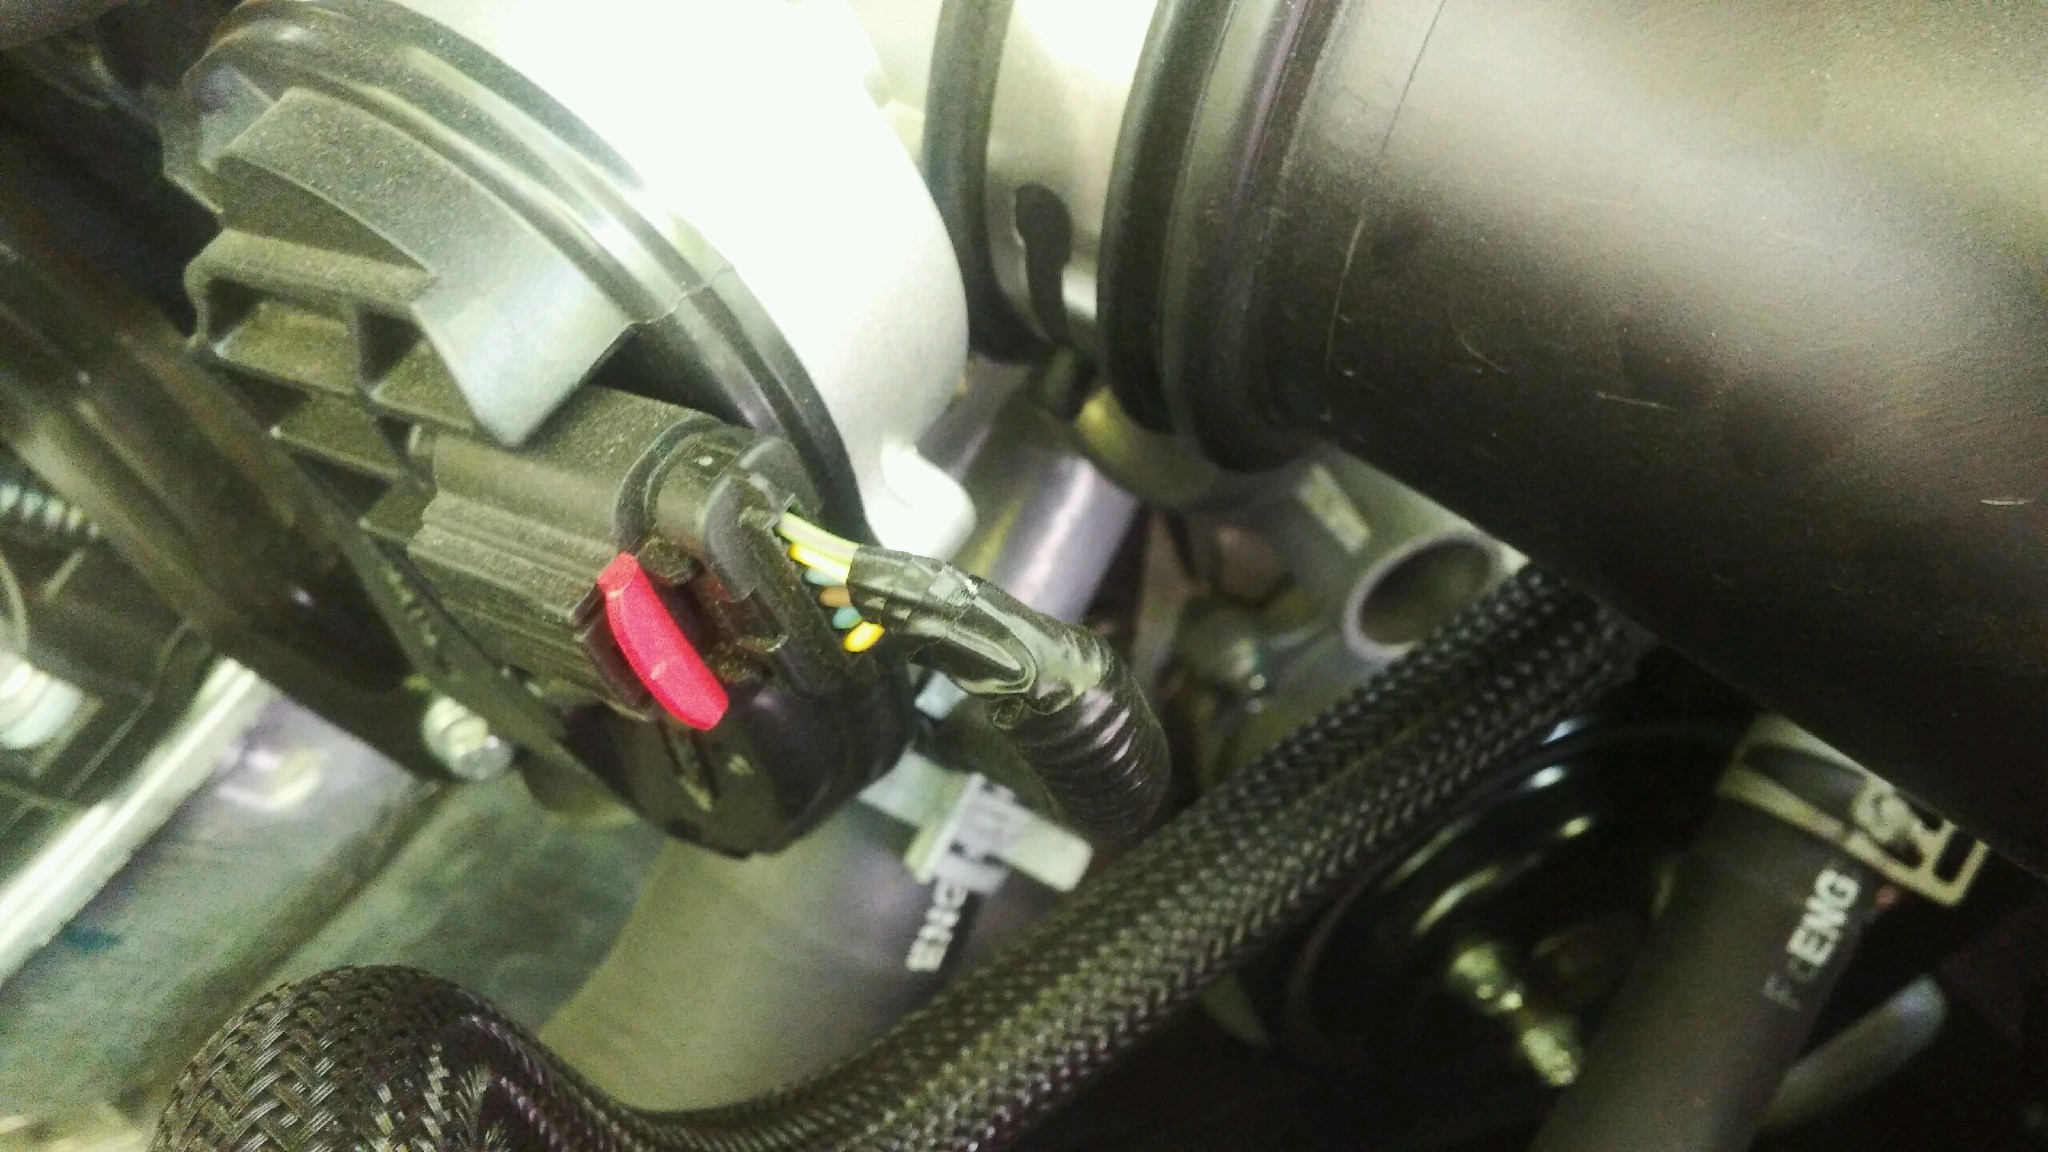 Ford Mustang L Maf Sensor on Ford Mustang Engine Diagram